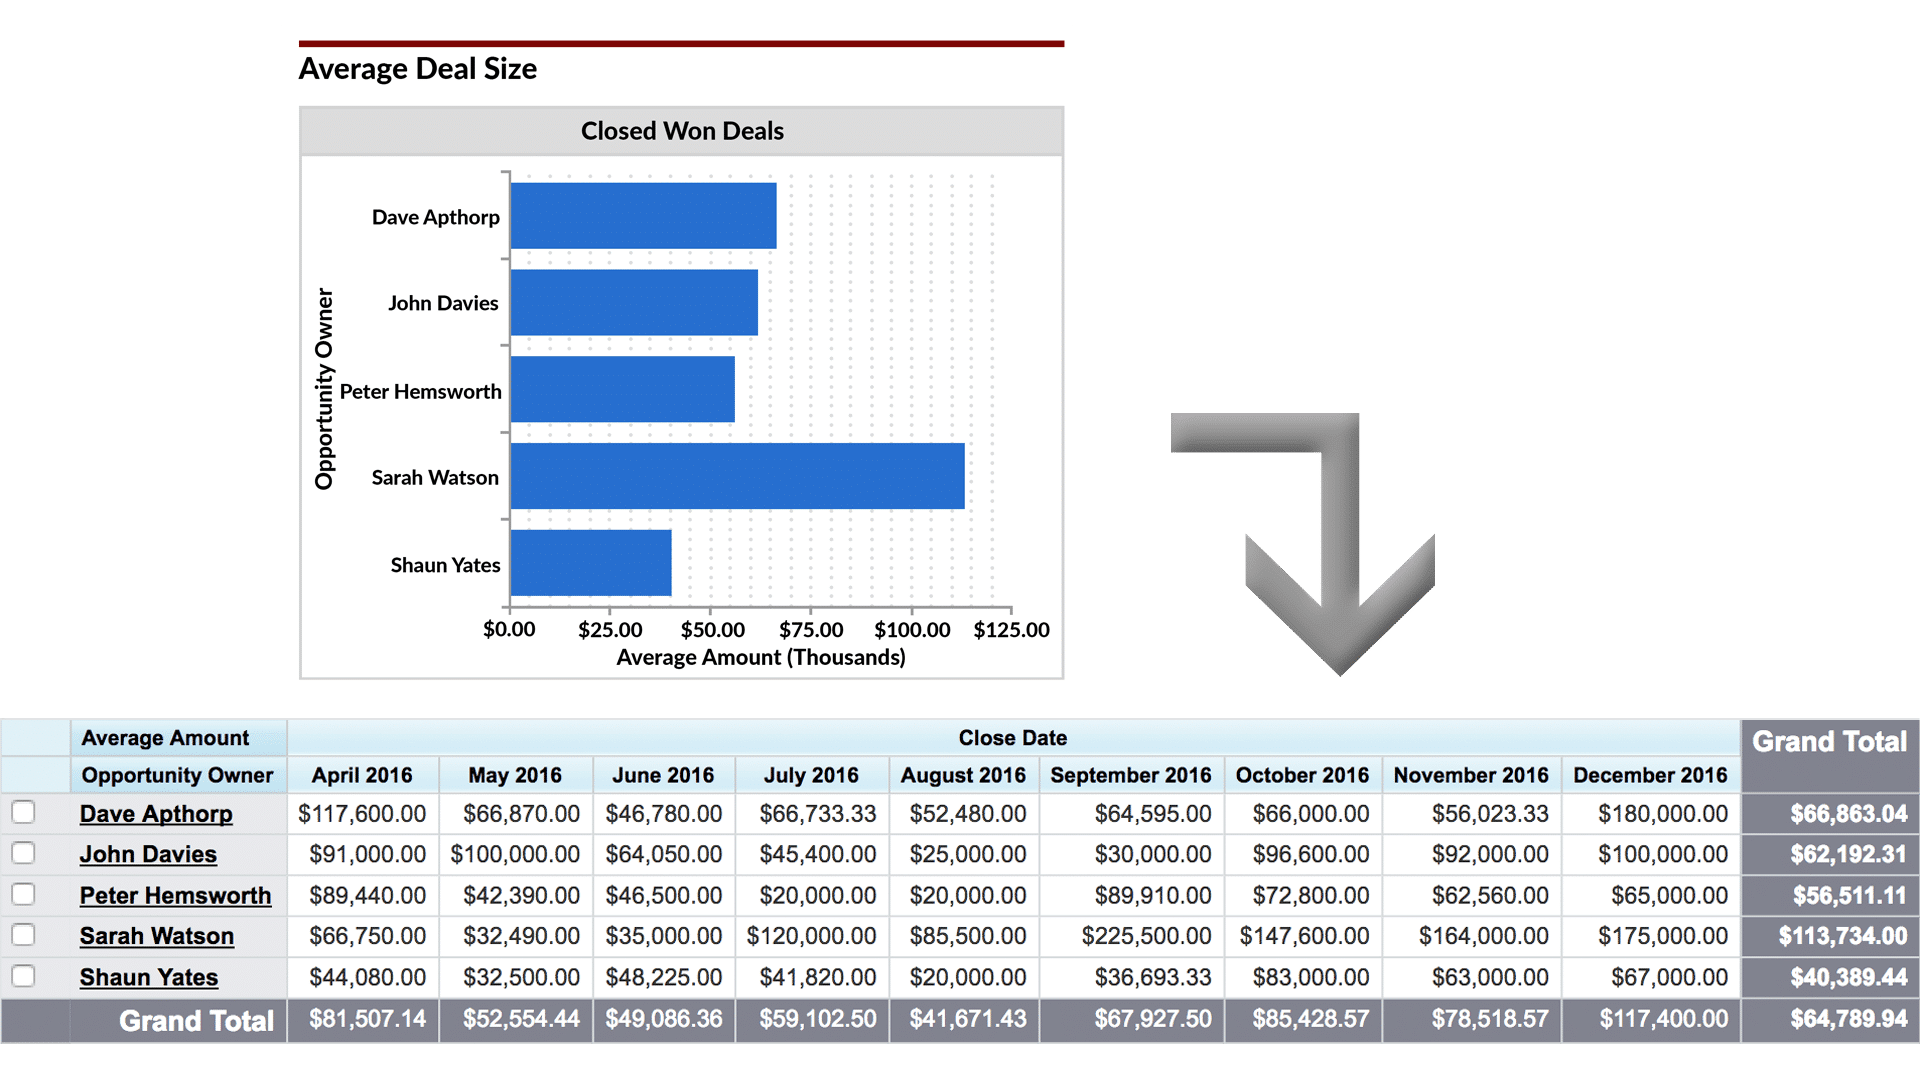 must have sforce dashboard s and pipeline charts many things explain variations in average deal size these include differences in experience between speople variations in the average number of